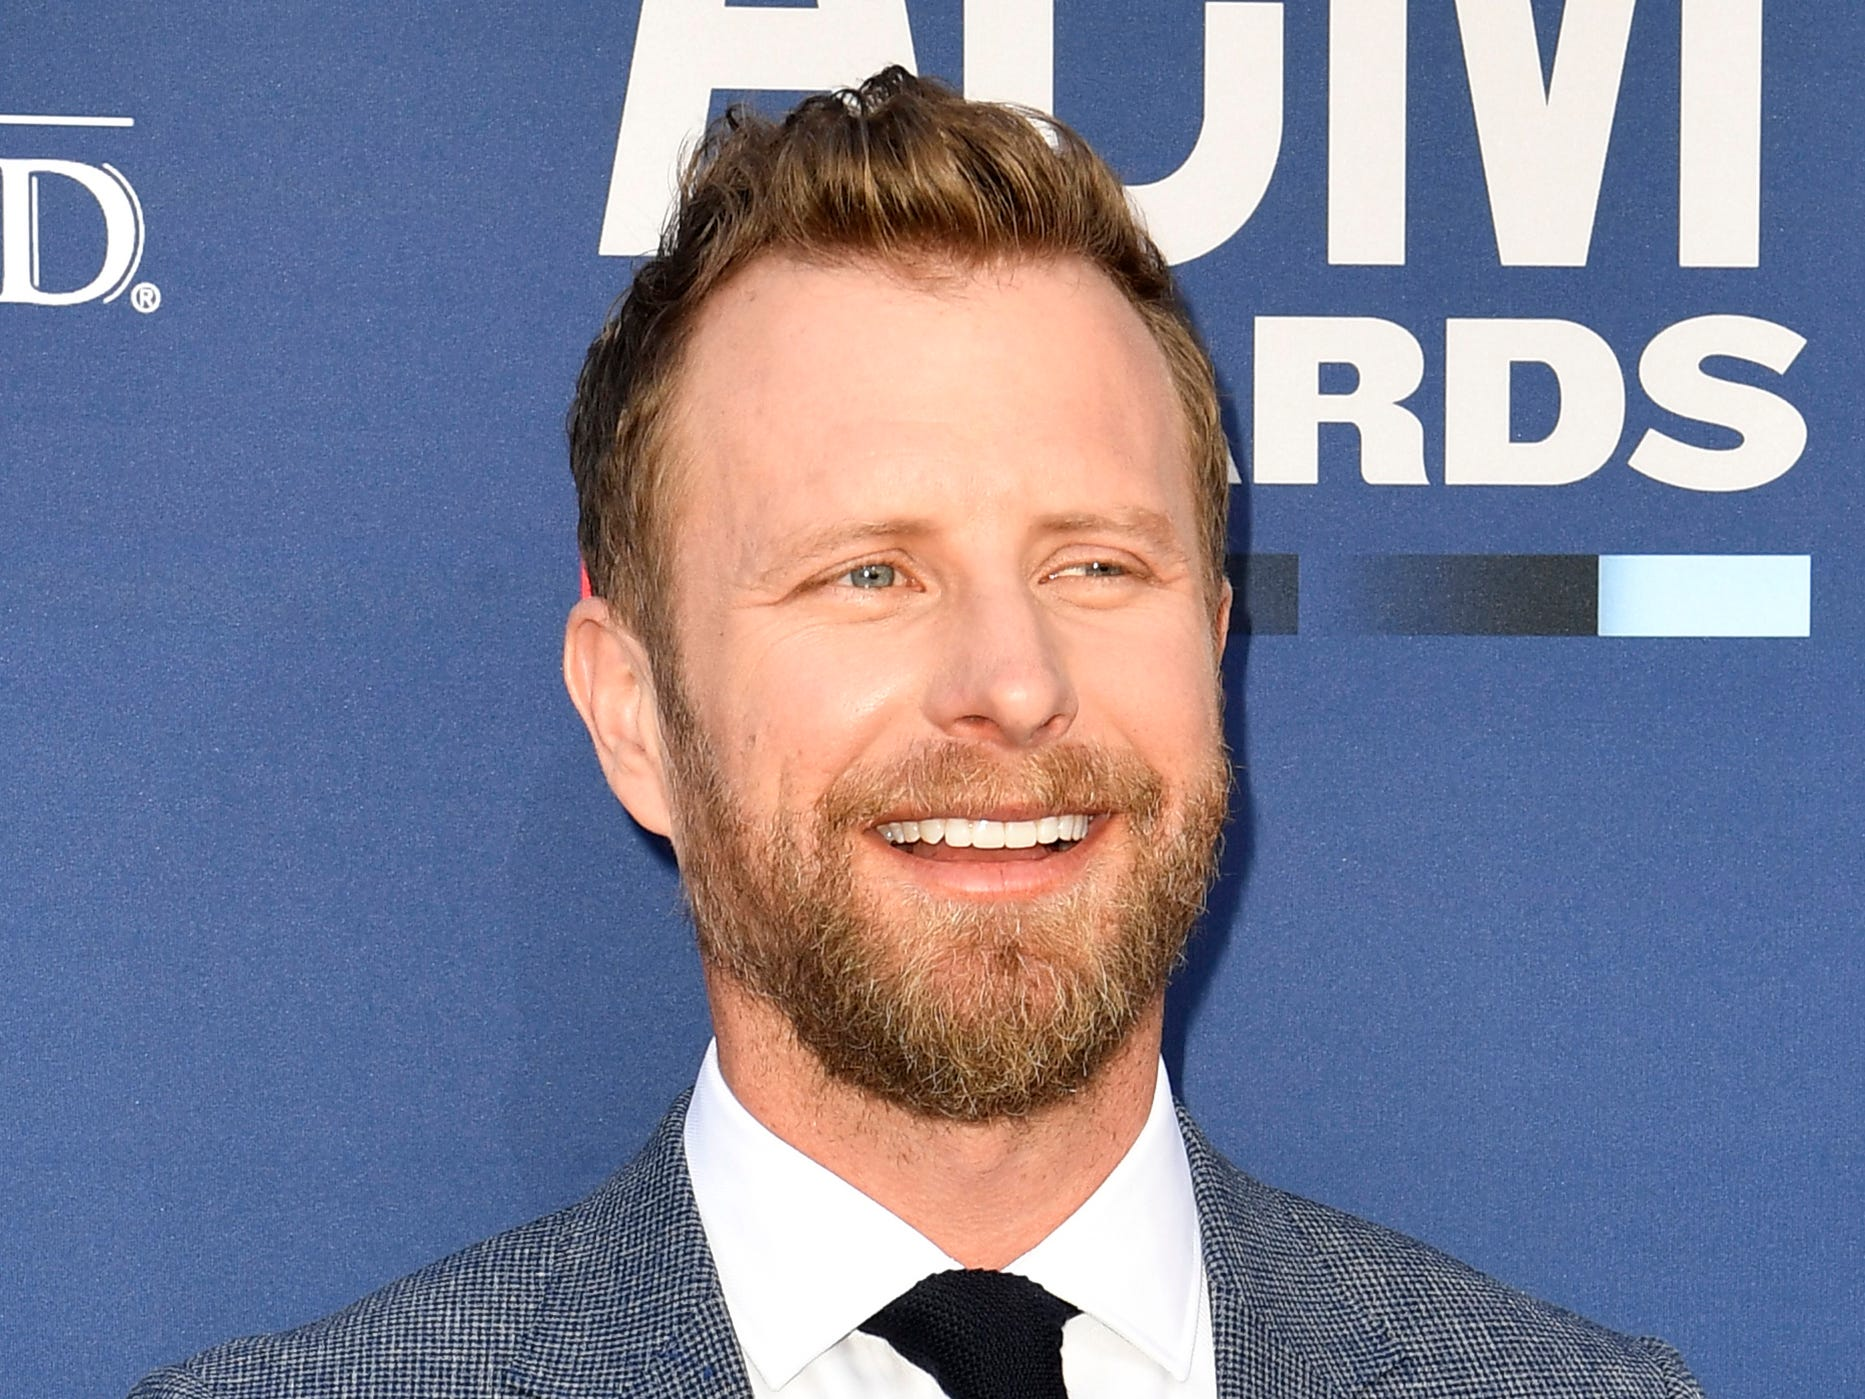 Dierks Bentley walks the red carpet at the 54TH Academy of Country Music Awards Sunday, April 7, 2019, in Las Vegas, Nev.